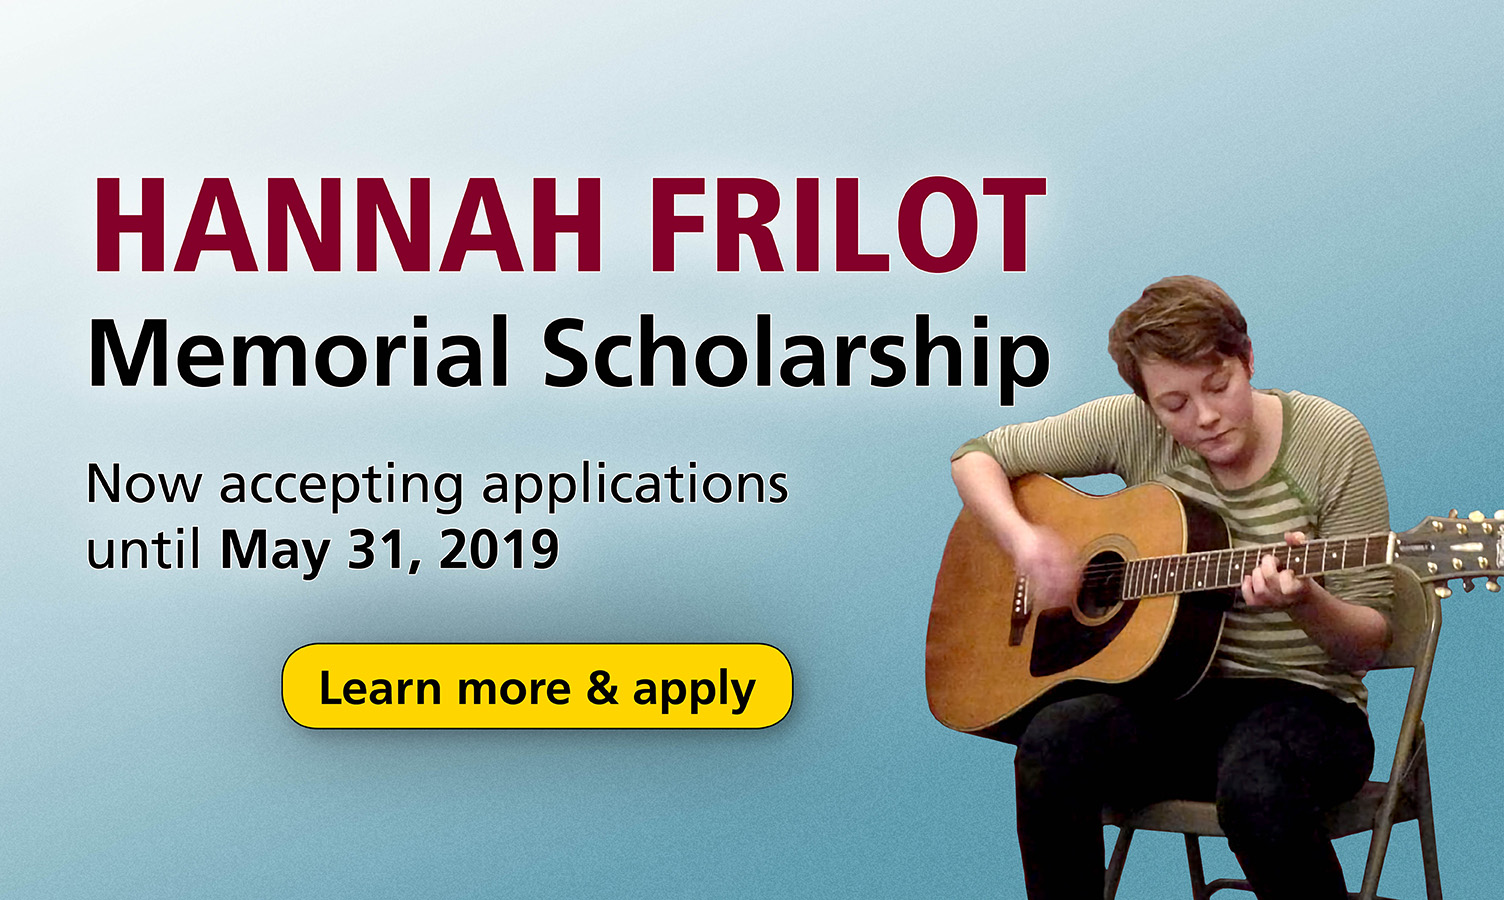 Hannah Frilot Memorial Scholarship. Now accepting applications until May 31, 2019.  Learn more and apply.